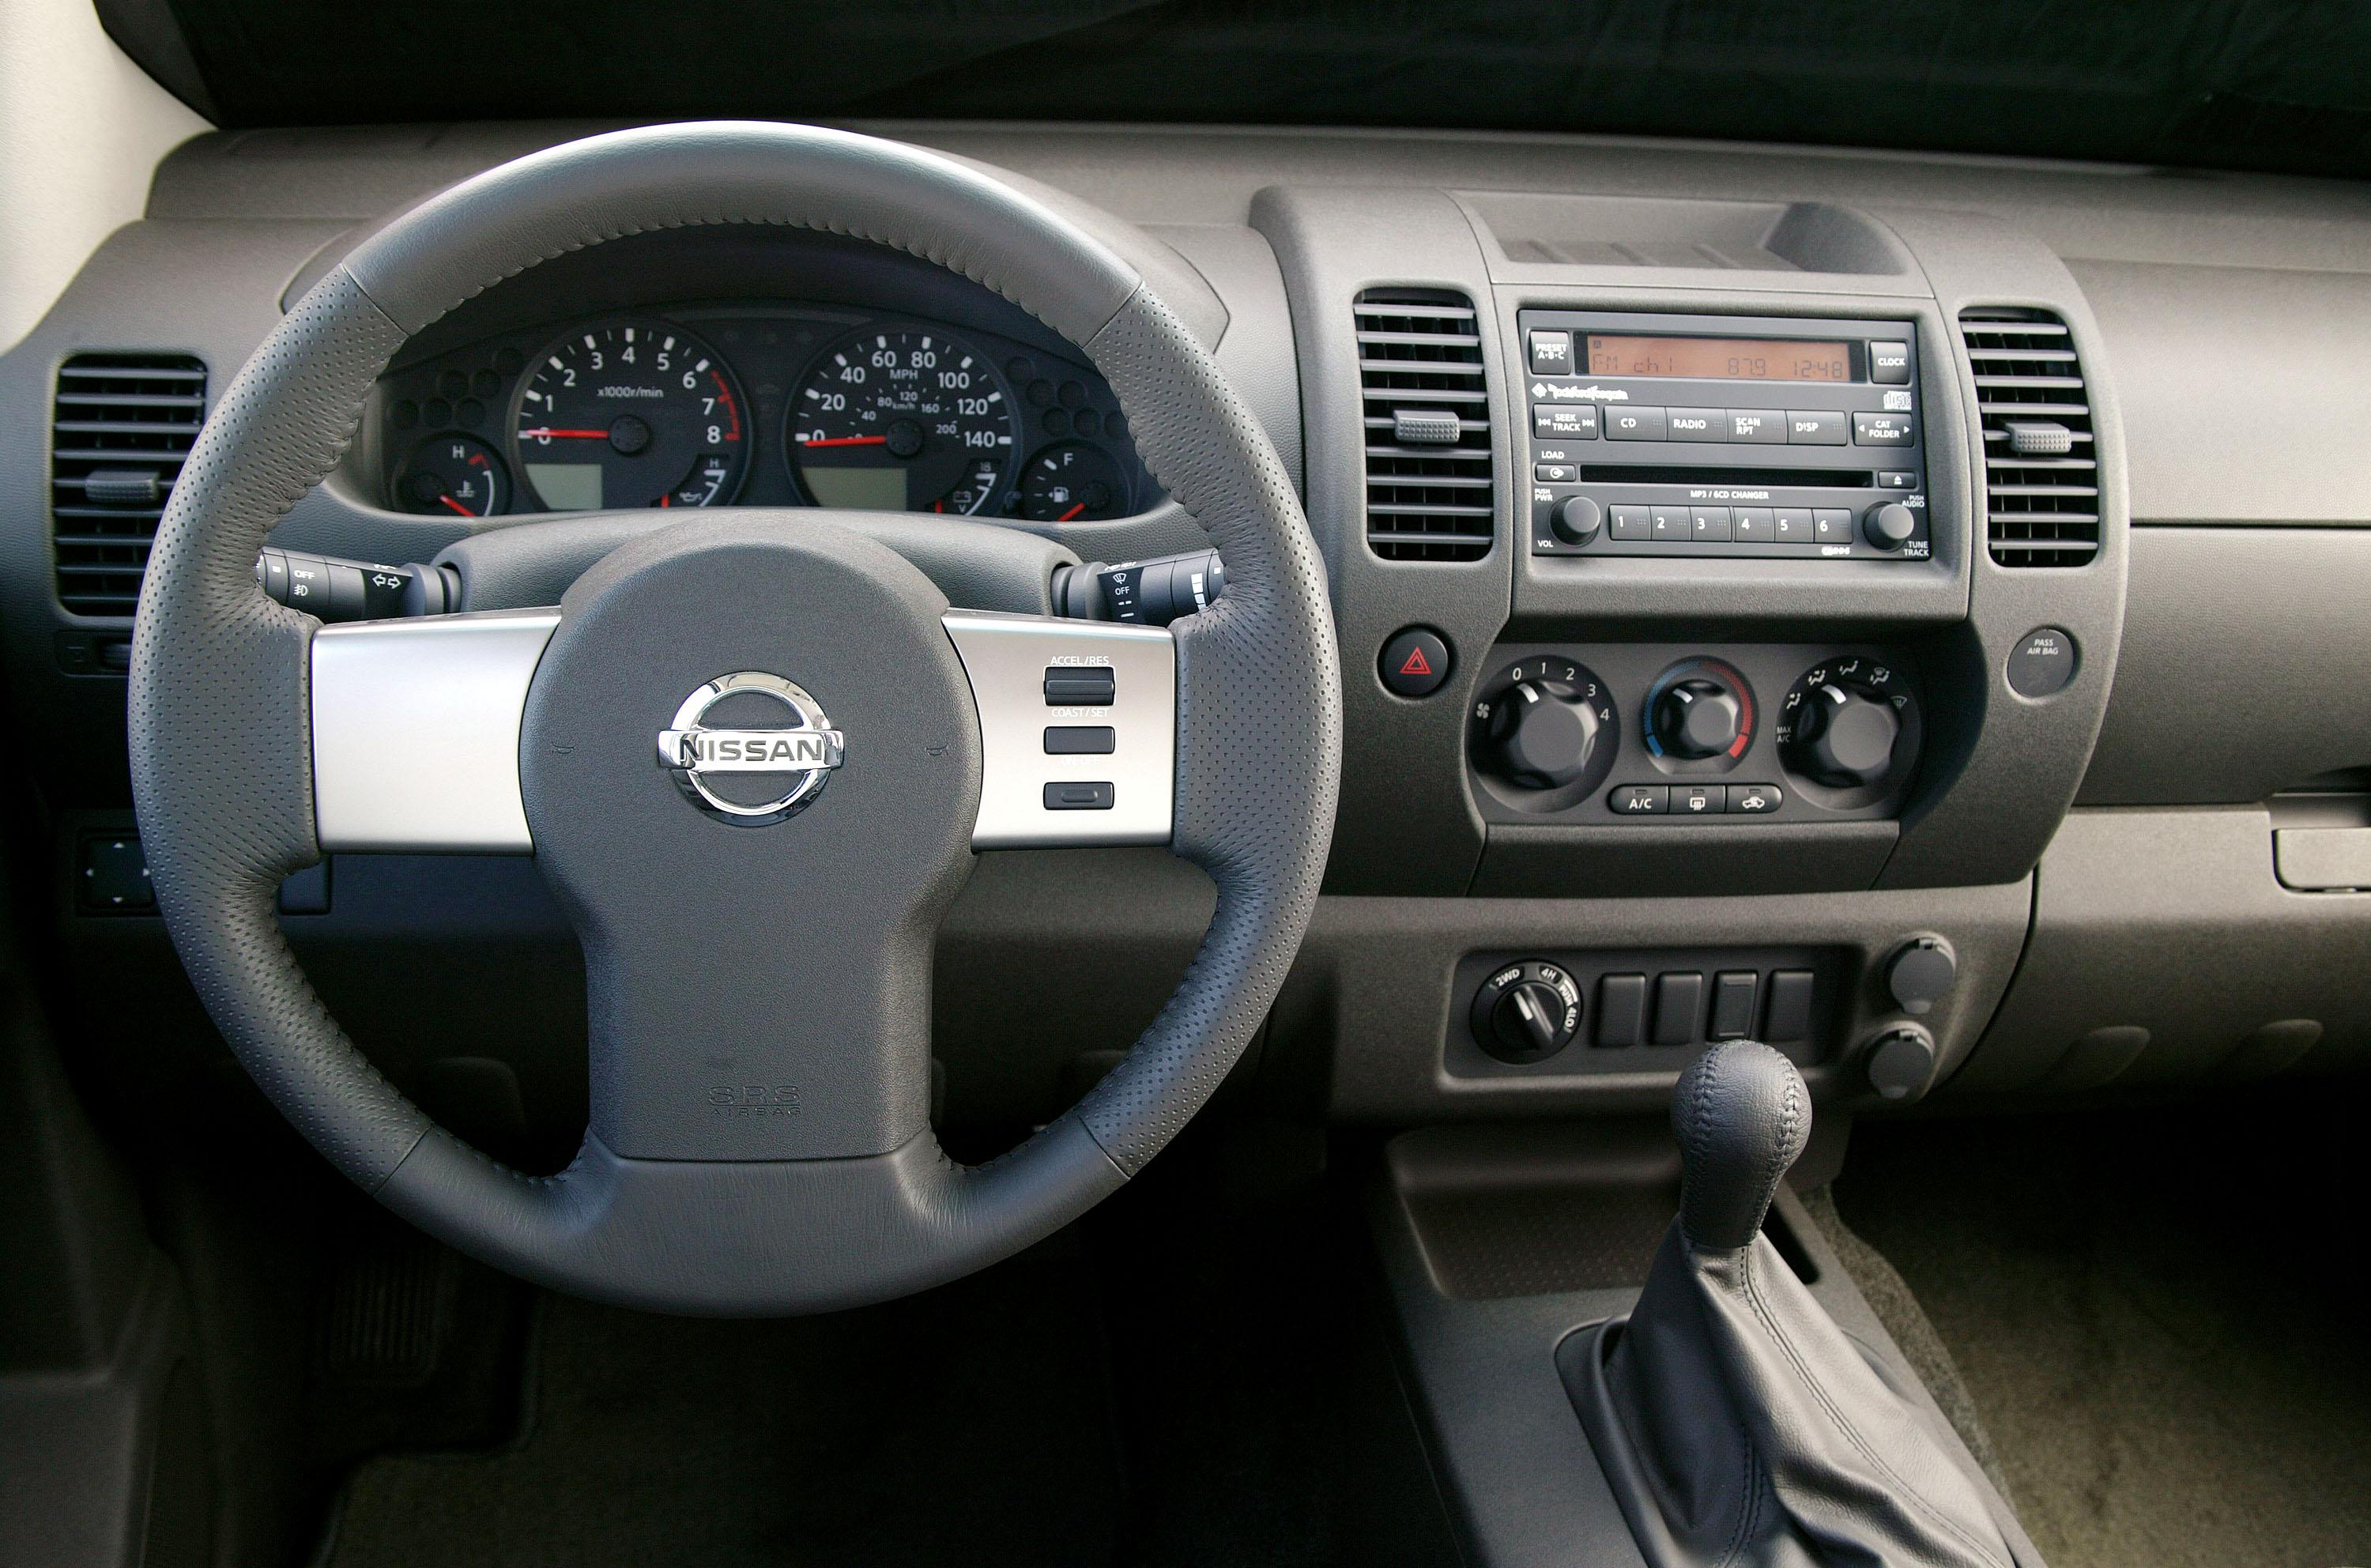 2007 Nissan Xterra Top Speed Forum O View Topic Mini Max Wiring With Steering Wheel Push Button